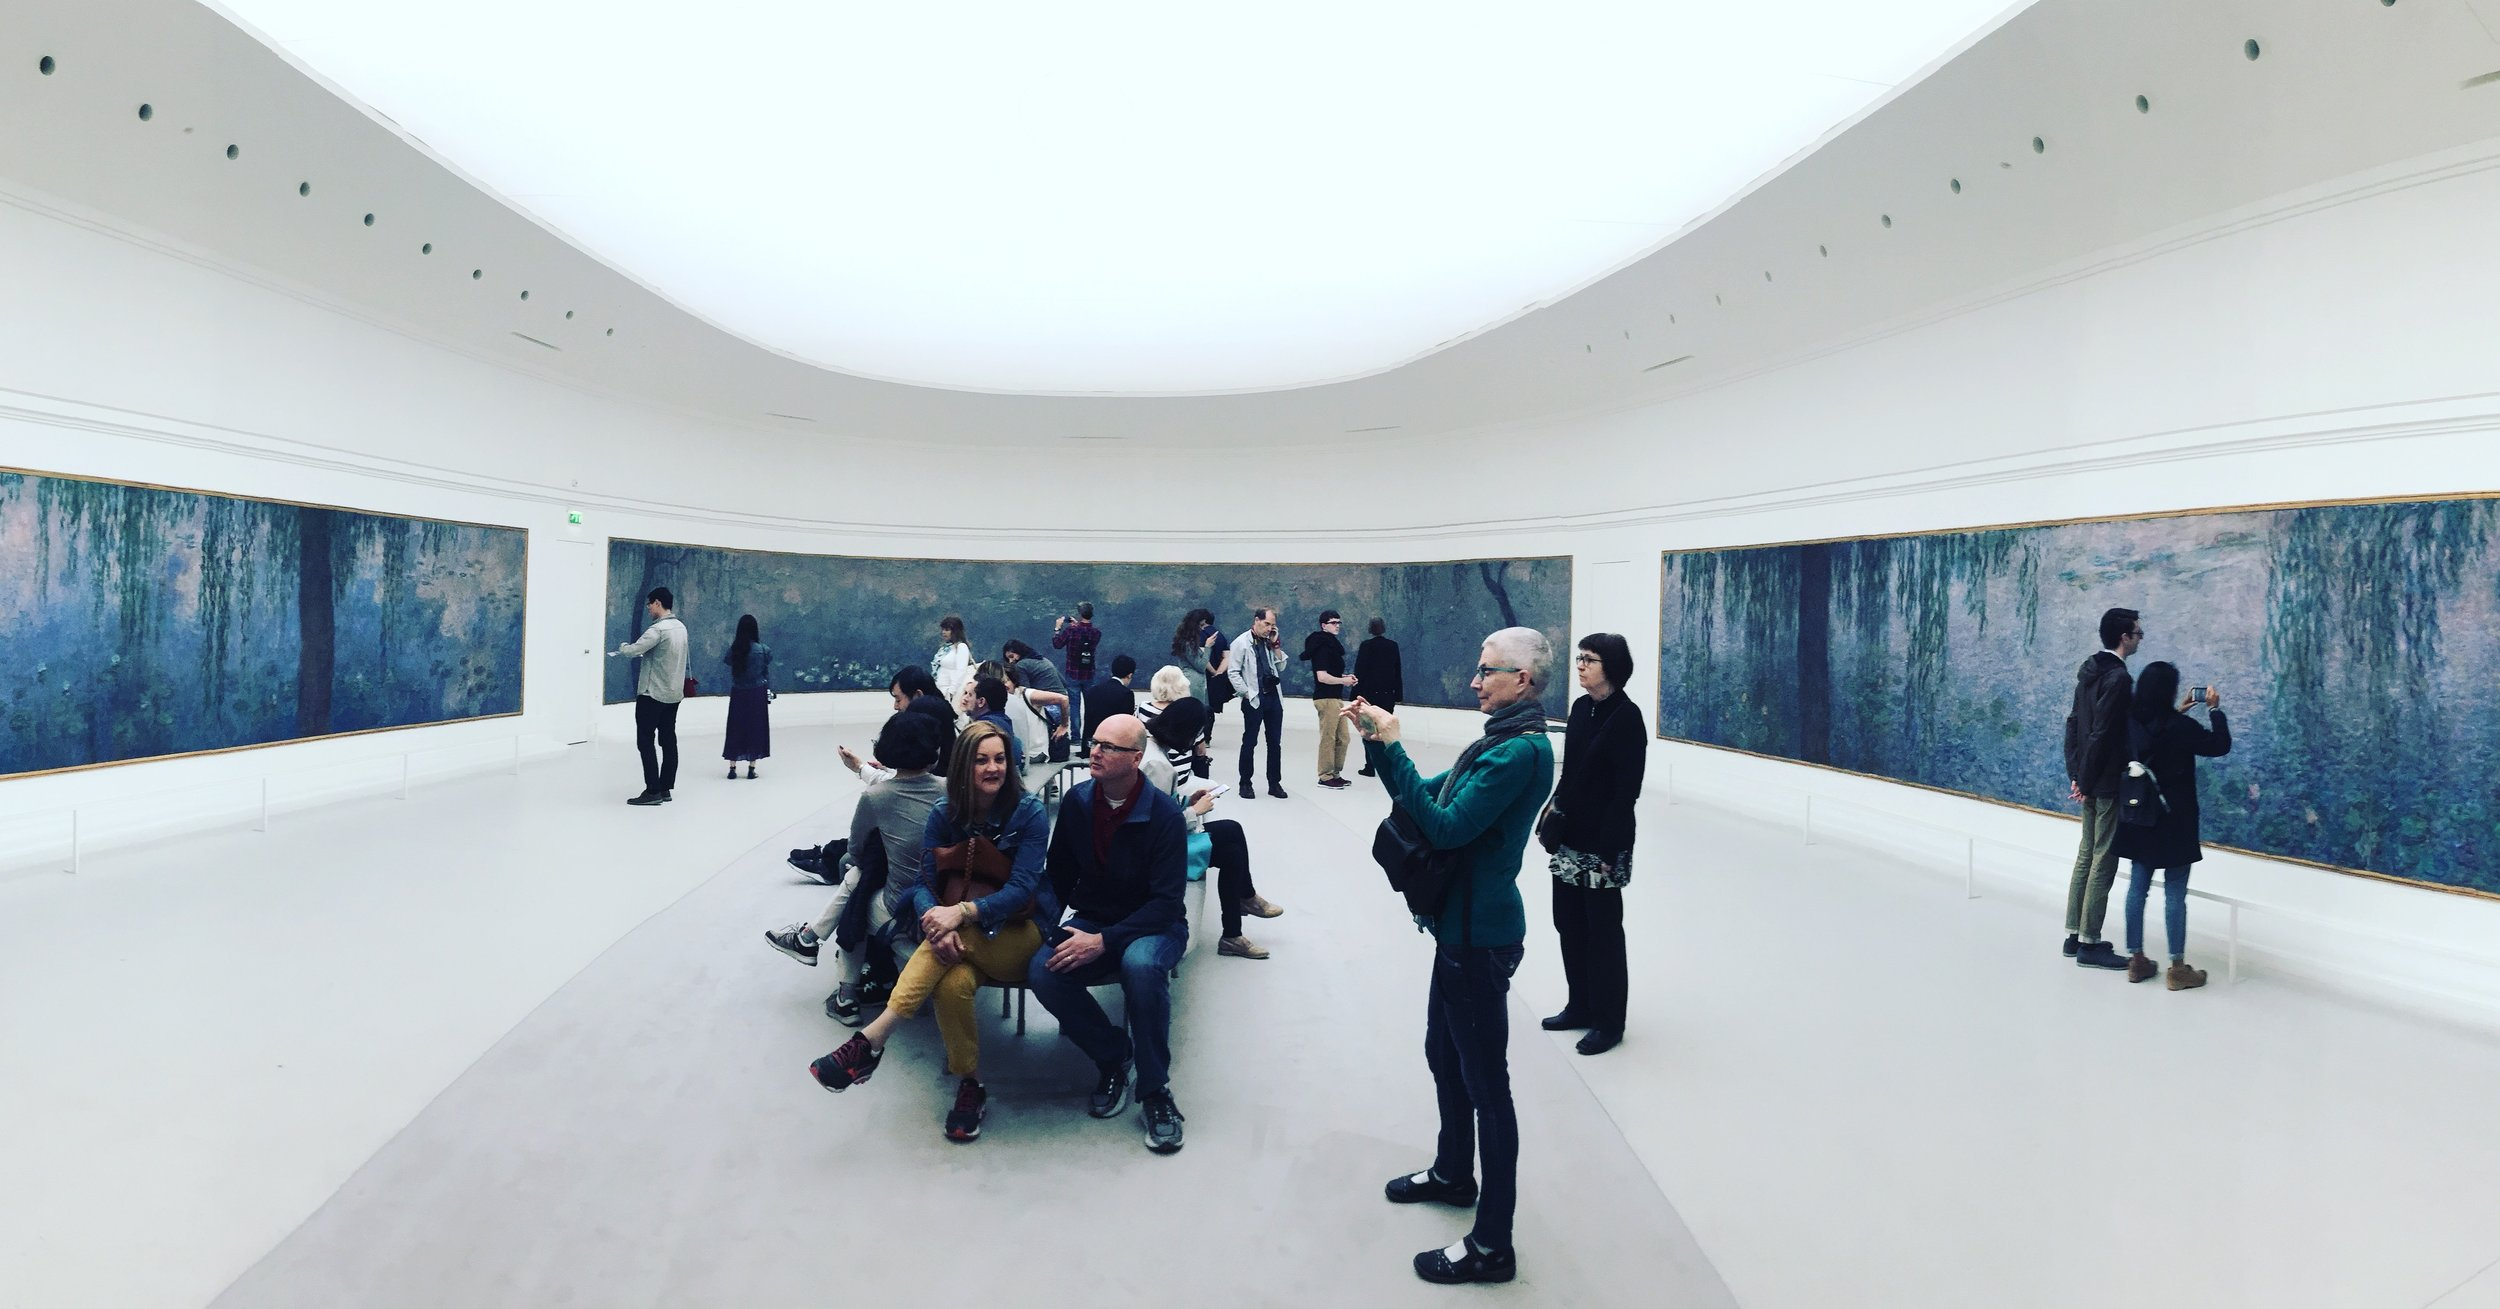 Capturing 180 degrees of Monet at the L'Orangerie Gallery in Paris.